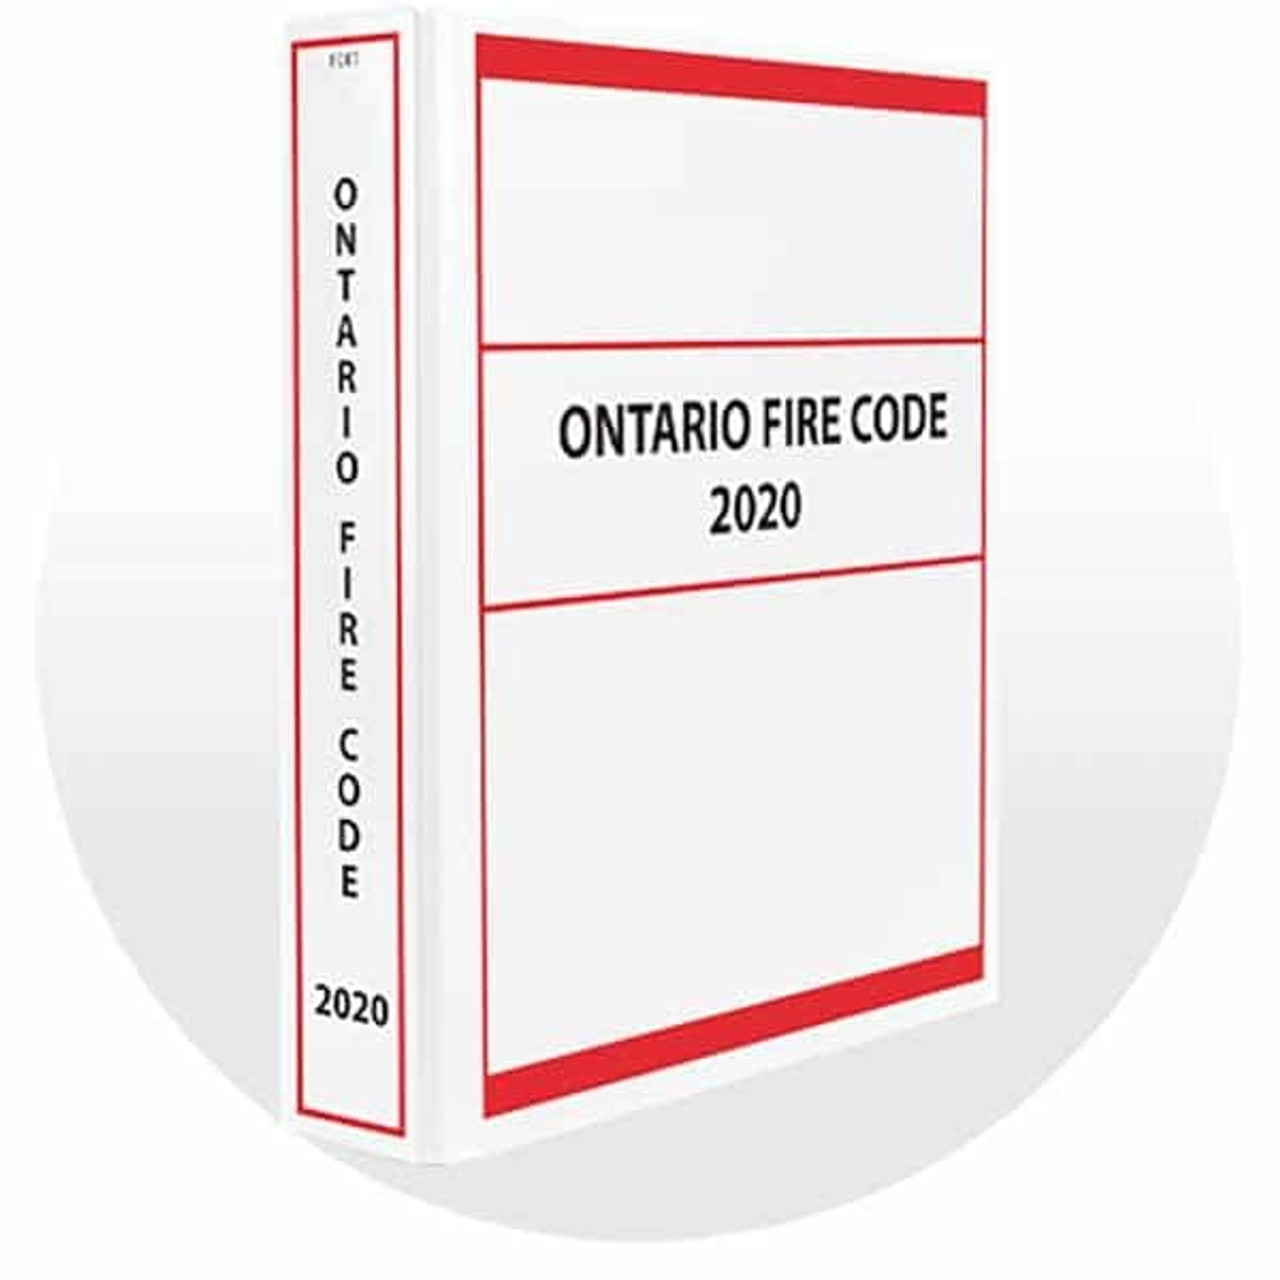 Building Codes, Fire Codes & NFPA Standards